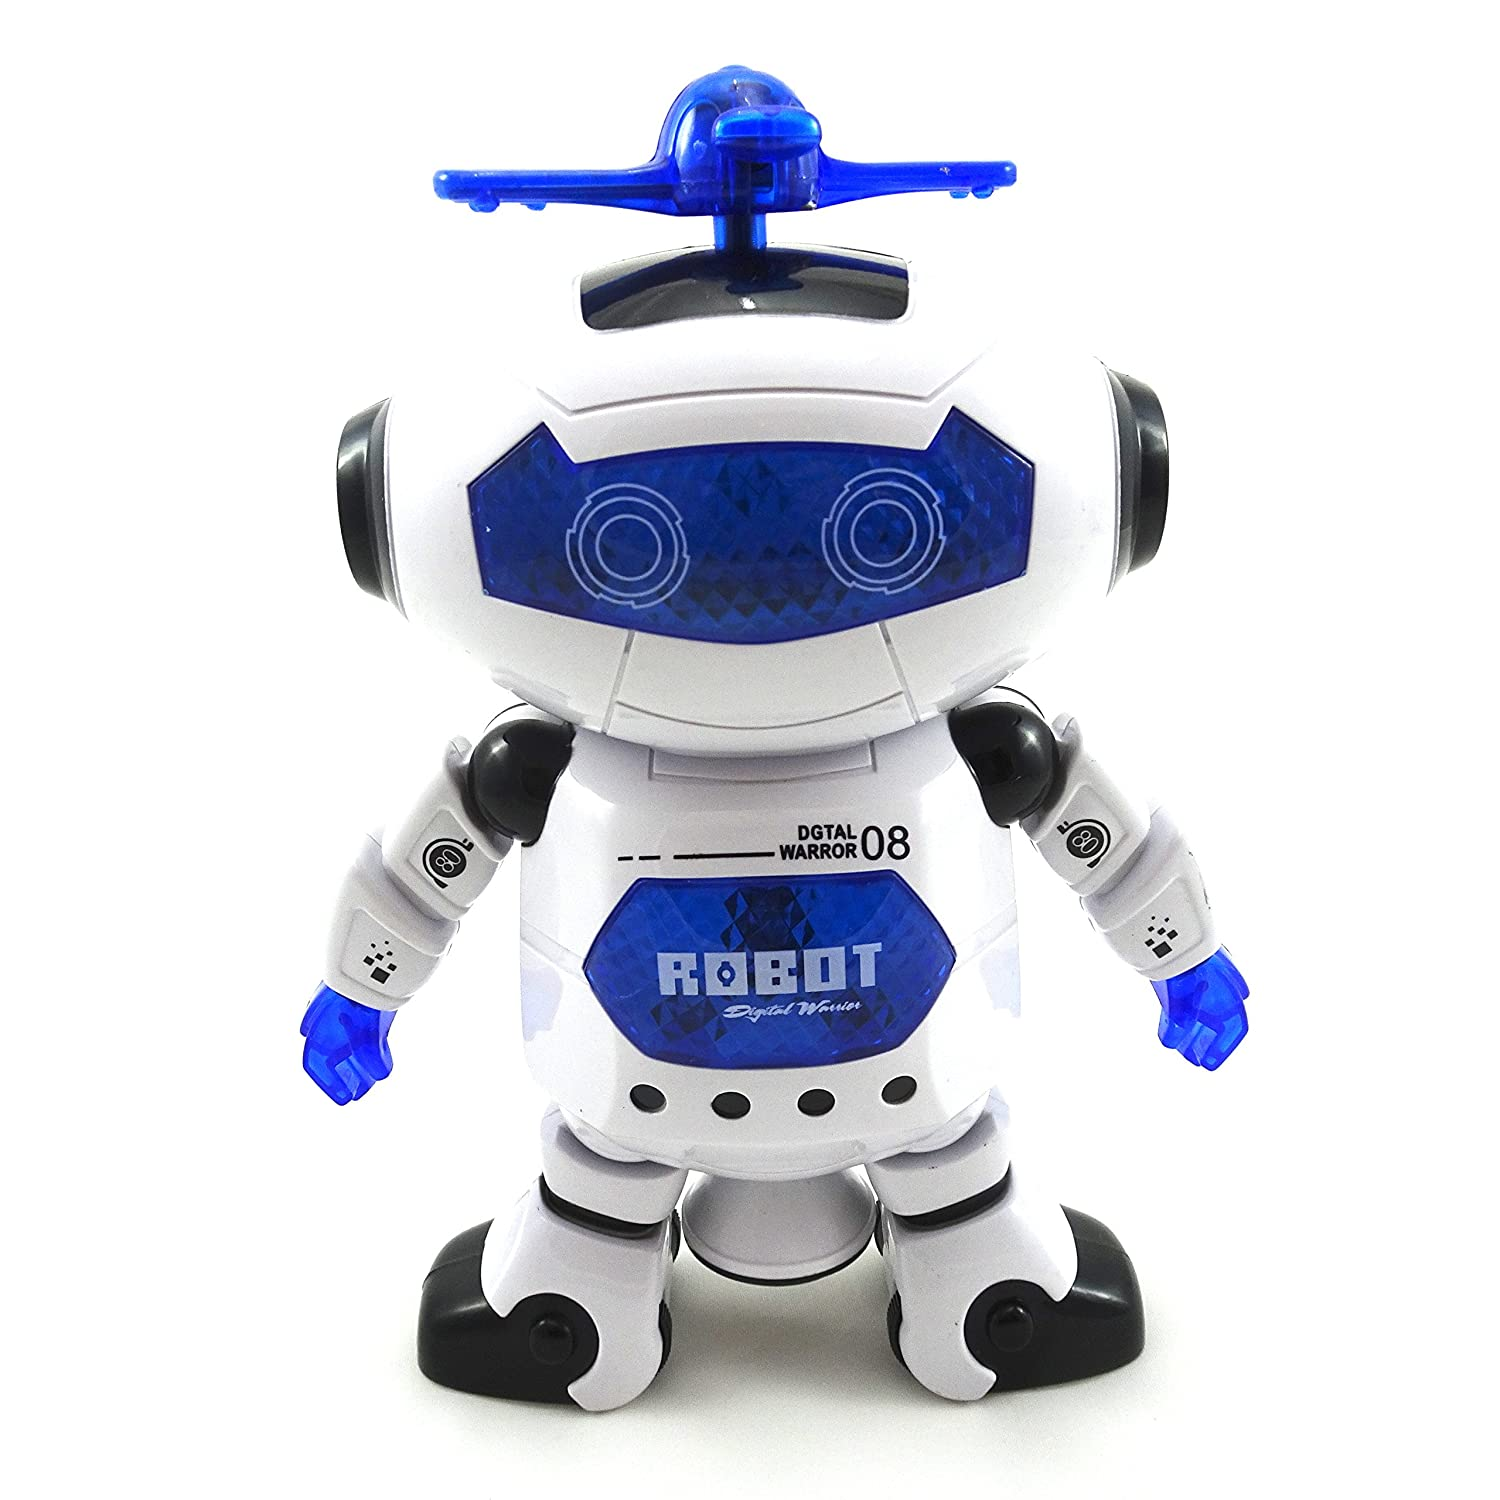 Amazon Env Toys Lights and Music Dancing Robot Toy for Kids